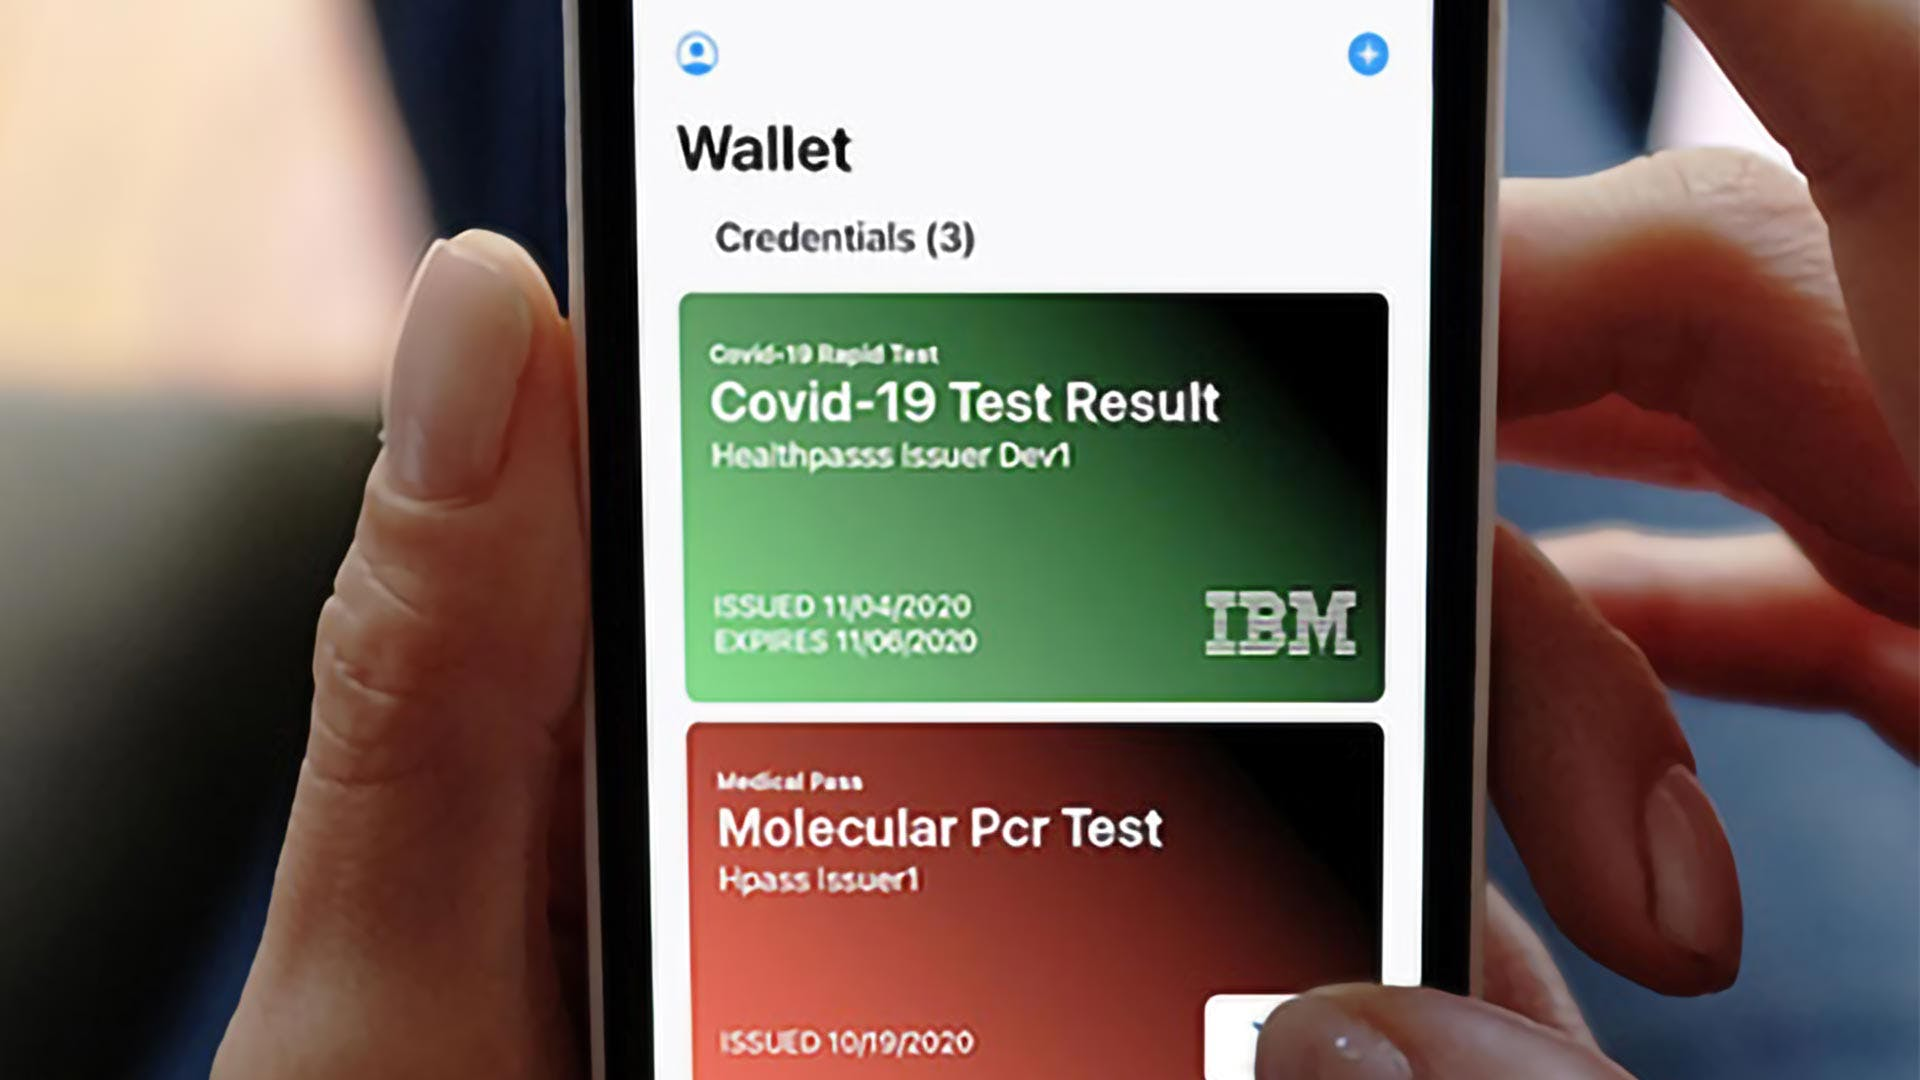 Mobile interface showing the COVID-19 health pass app